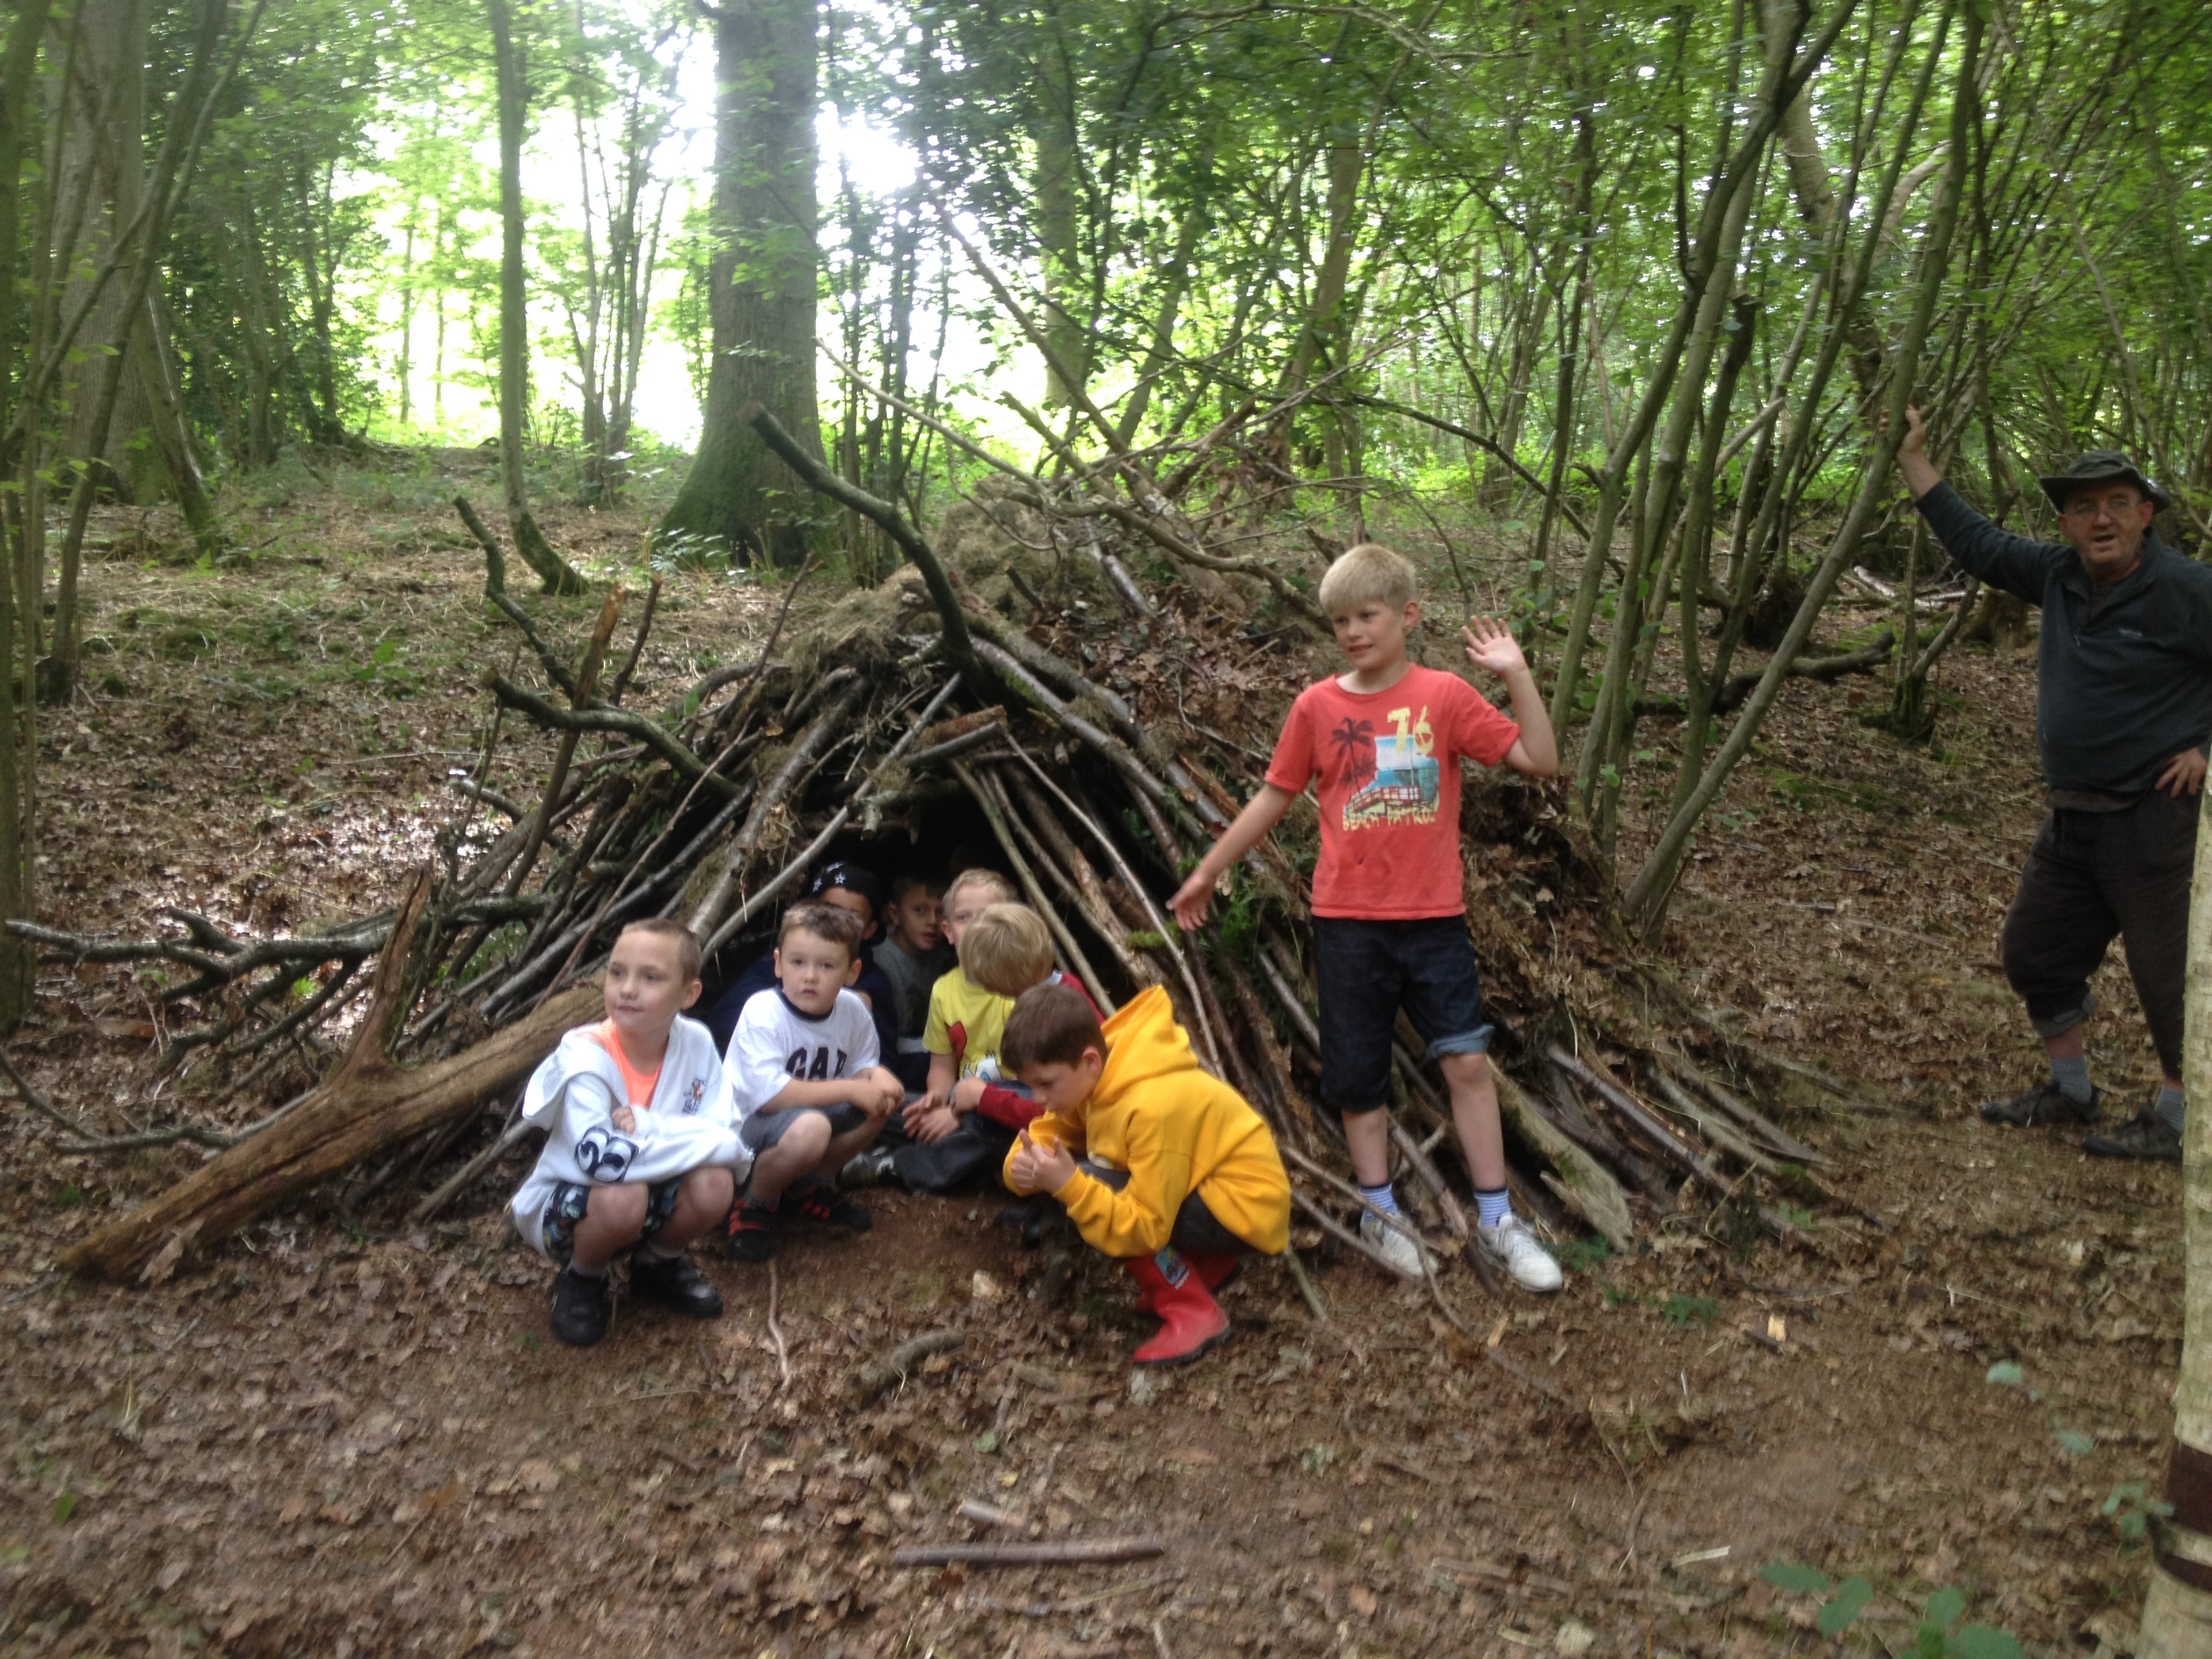 Family bushcraft woodland day out